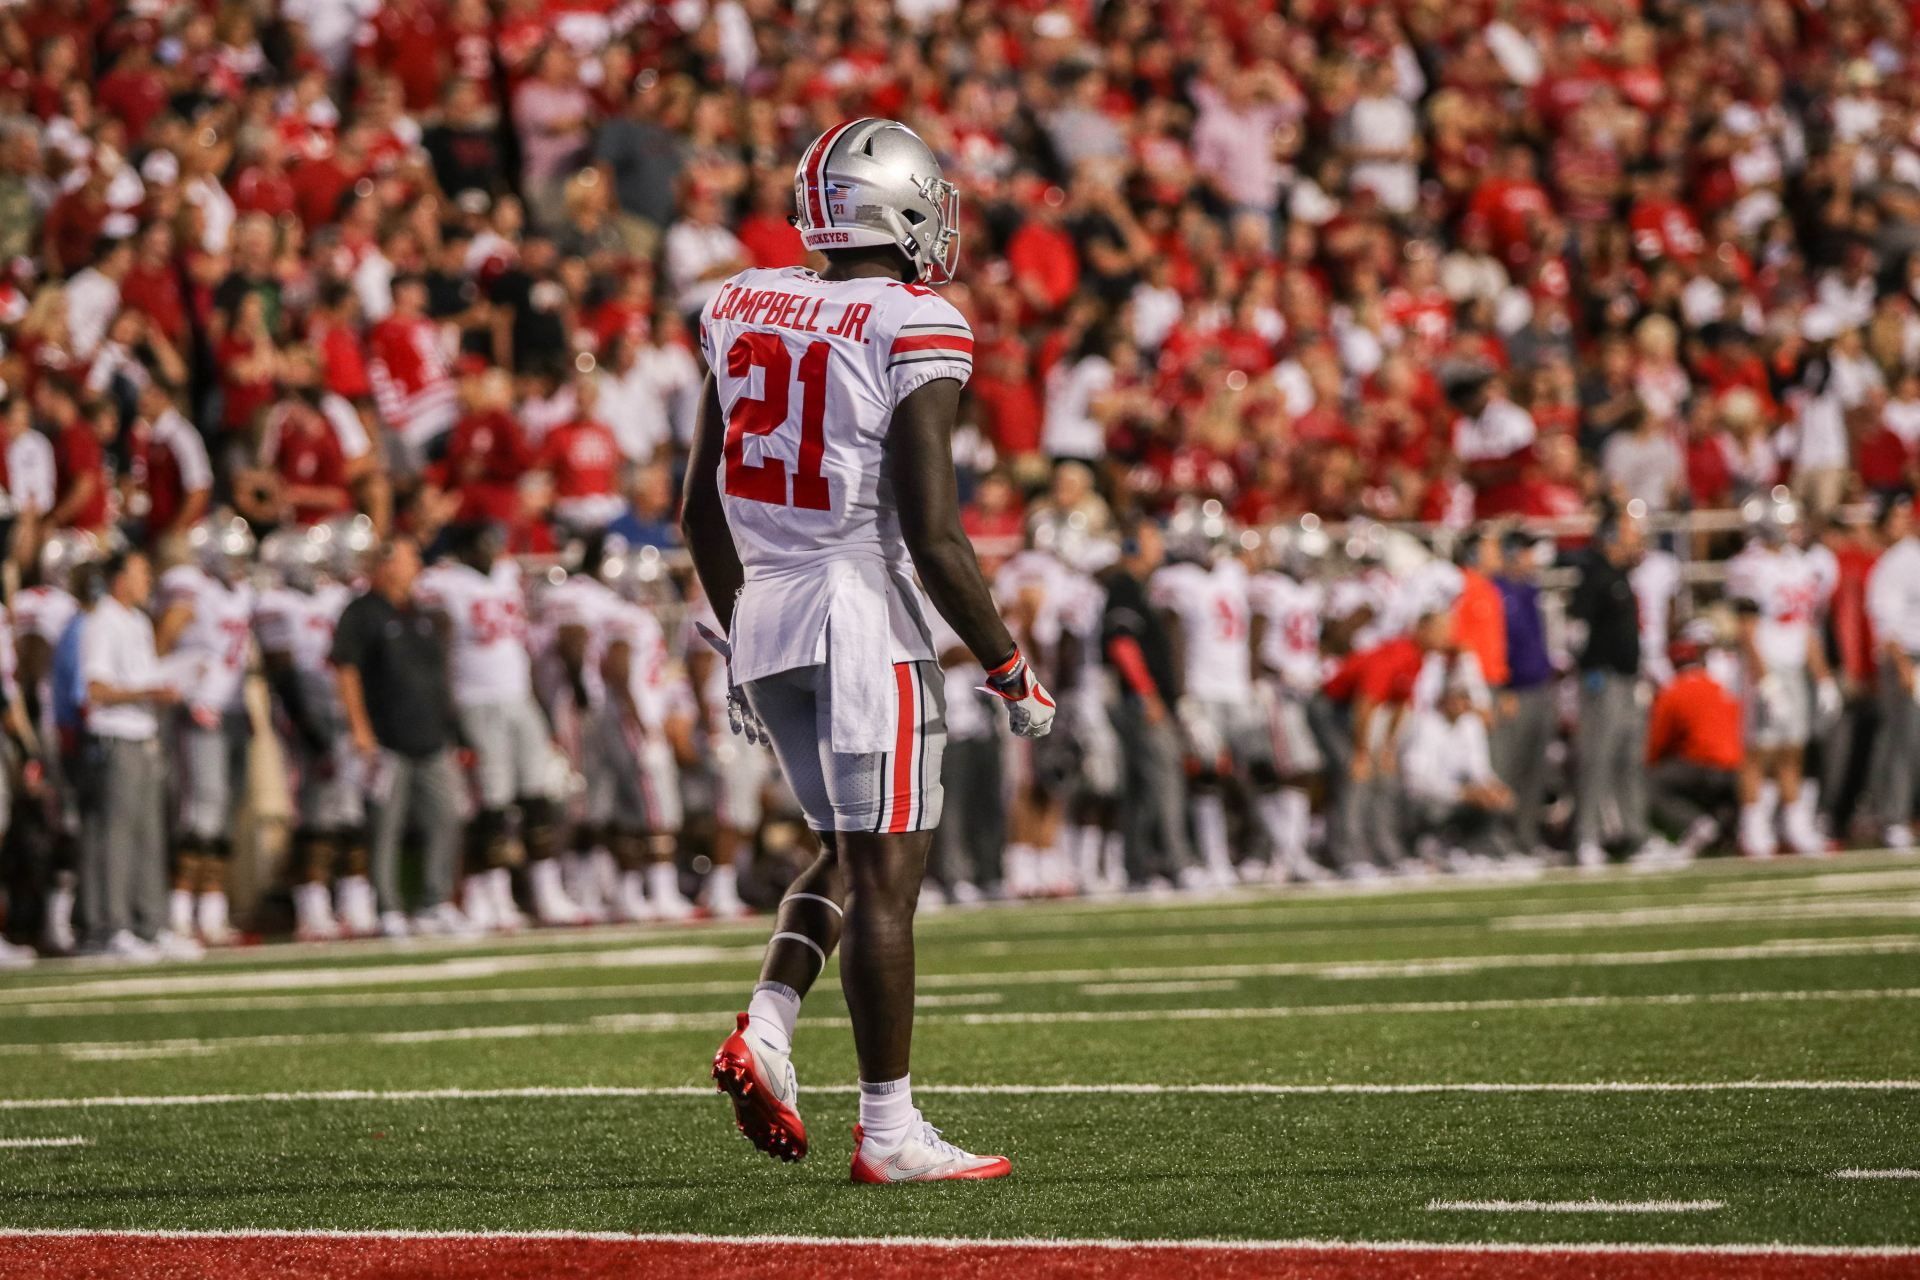 Ohio State Buckeyes Football: By The Numbers